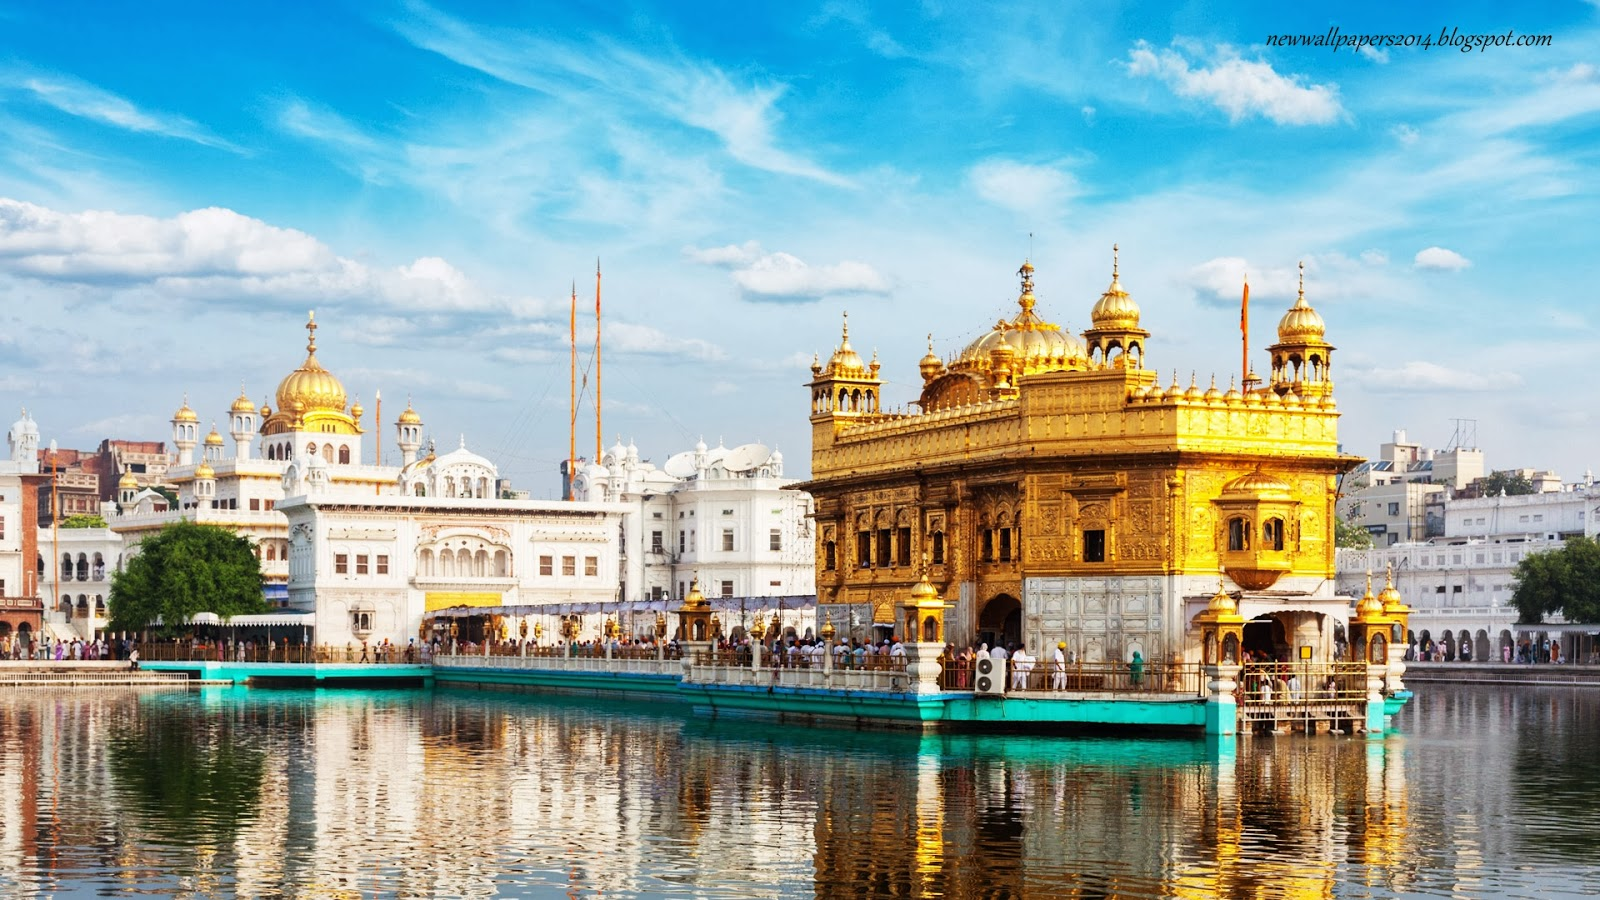 The golden temple the golden temple hd wallpapers hd - Golden temple images hd download ...